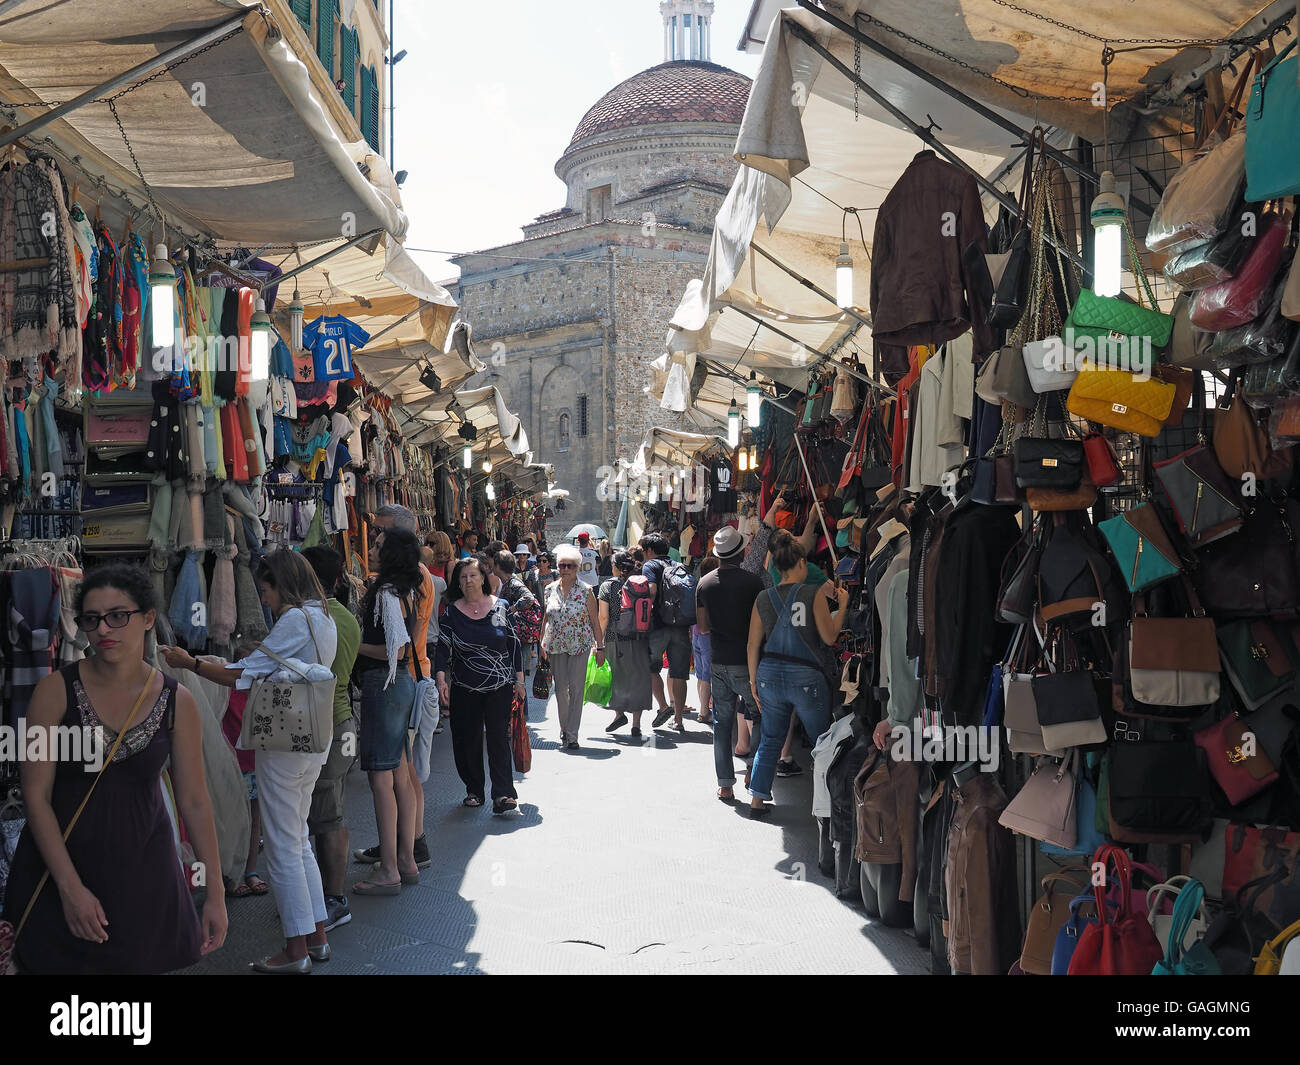 View of the busy Mercato San Lorenzo street market in Florence Italy - Stock Image